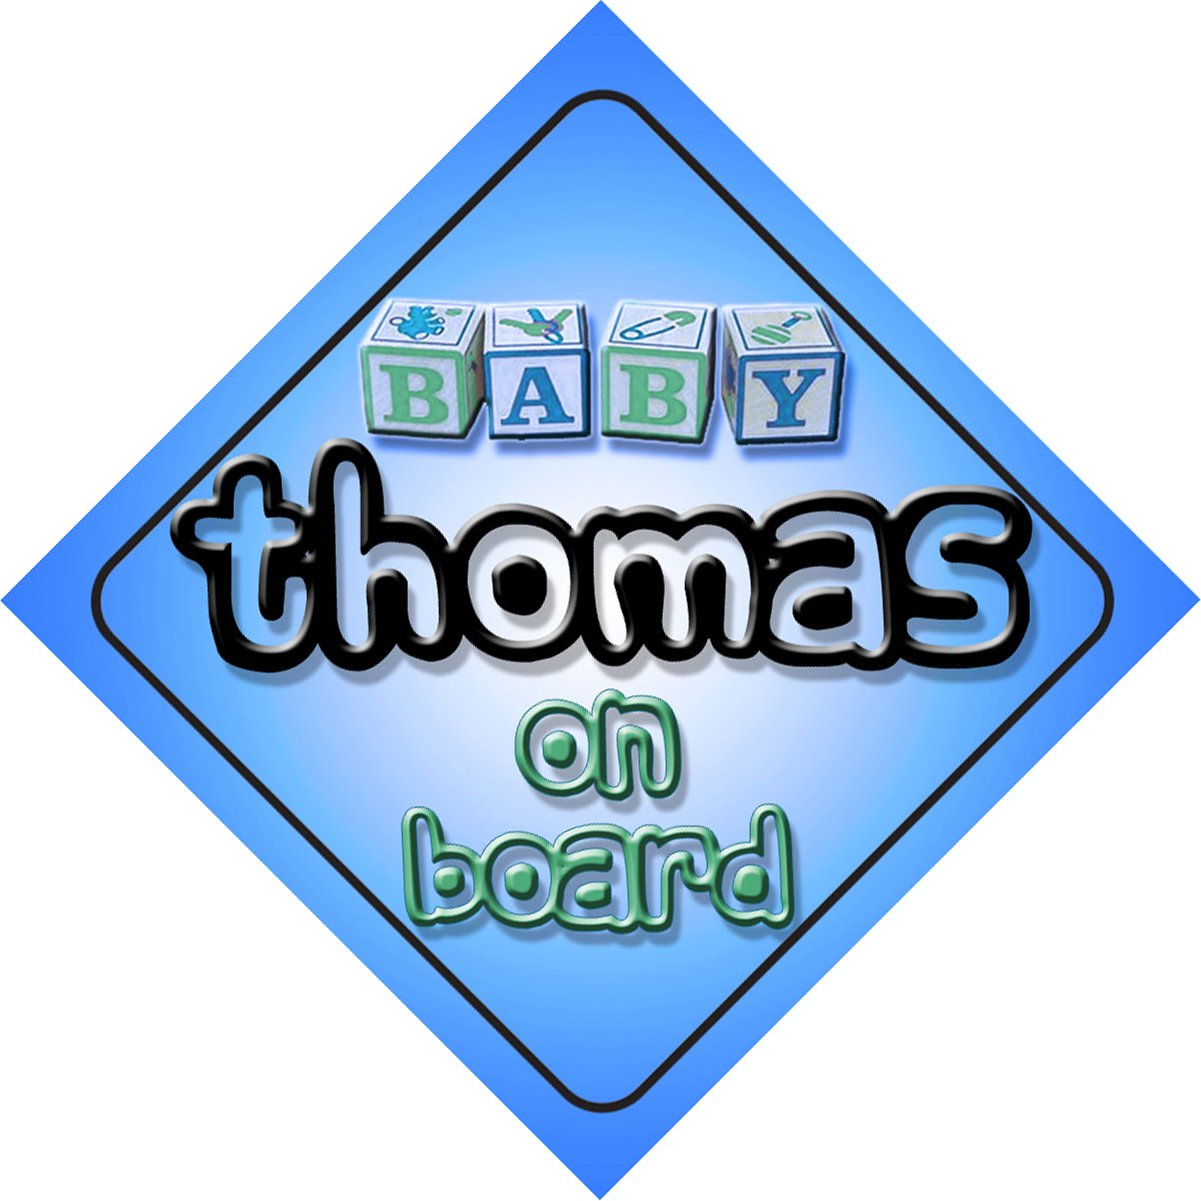 Baby Boy Thomas on board novelty car sign gift//present for new child//newborn baby